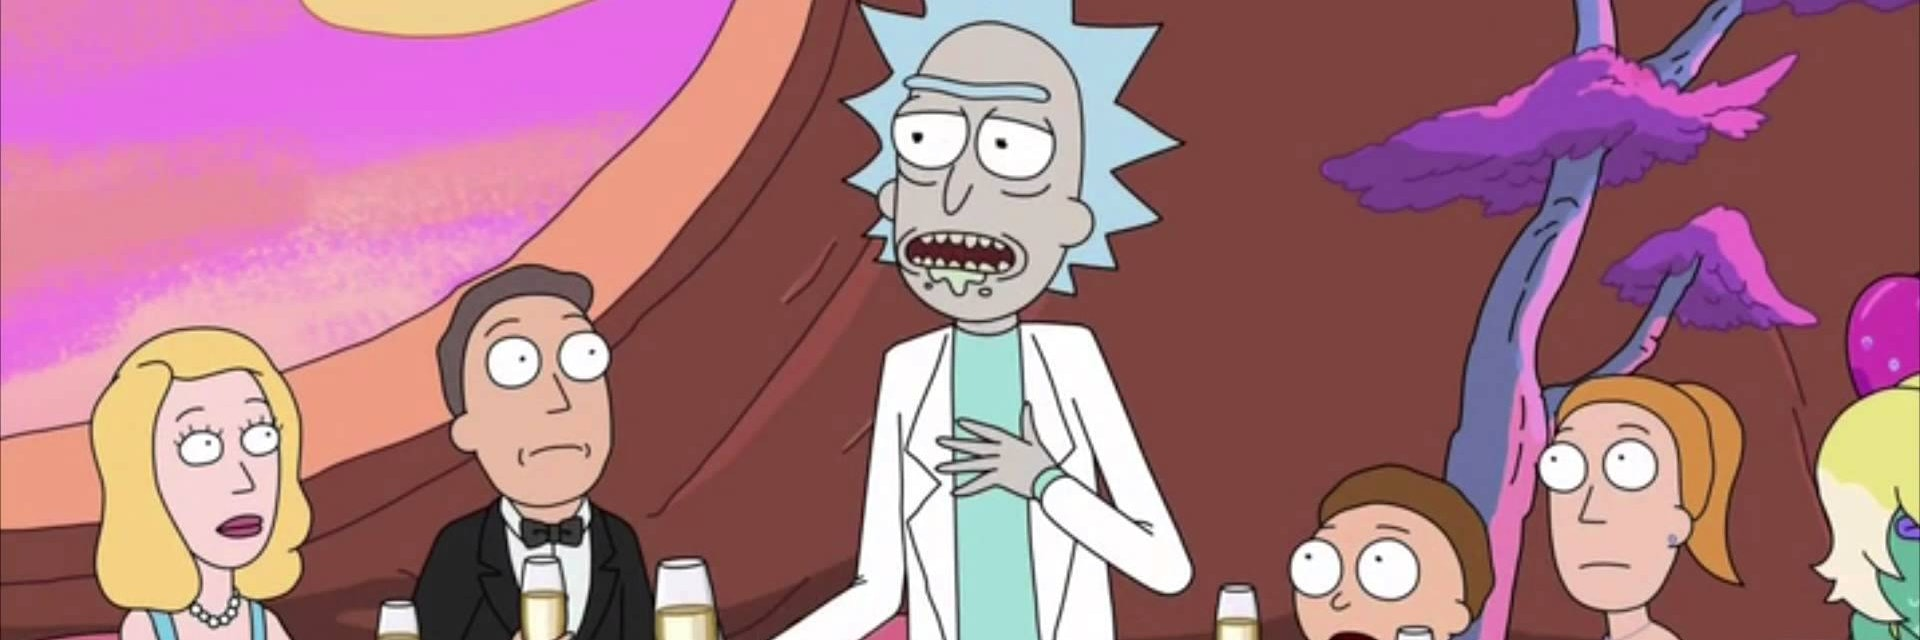 Best Rick And Morty Quotes Best The 11 Best Rick And Morty Quotes In Honor Of Season 3's Return